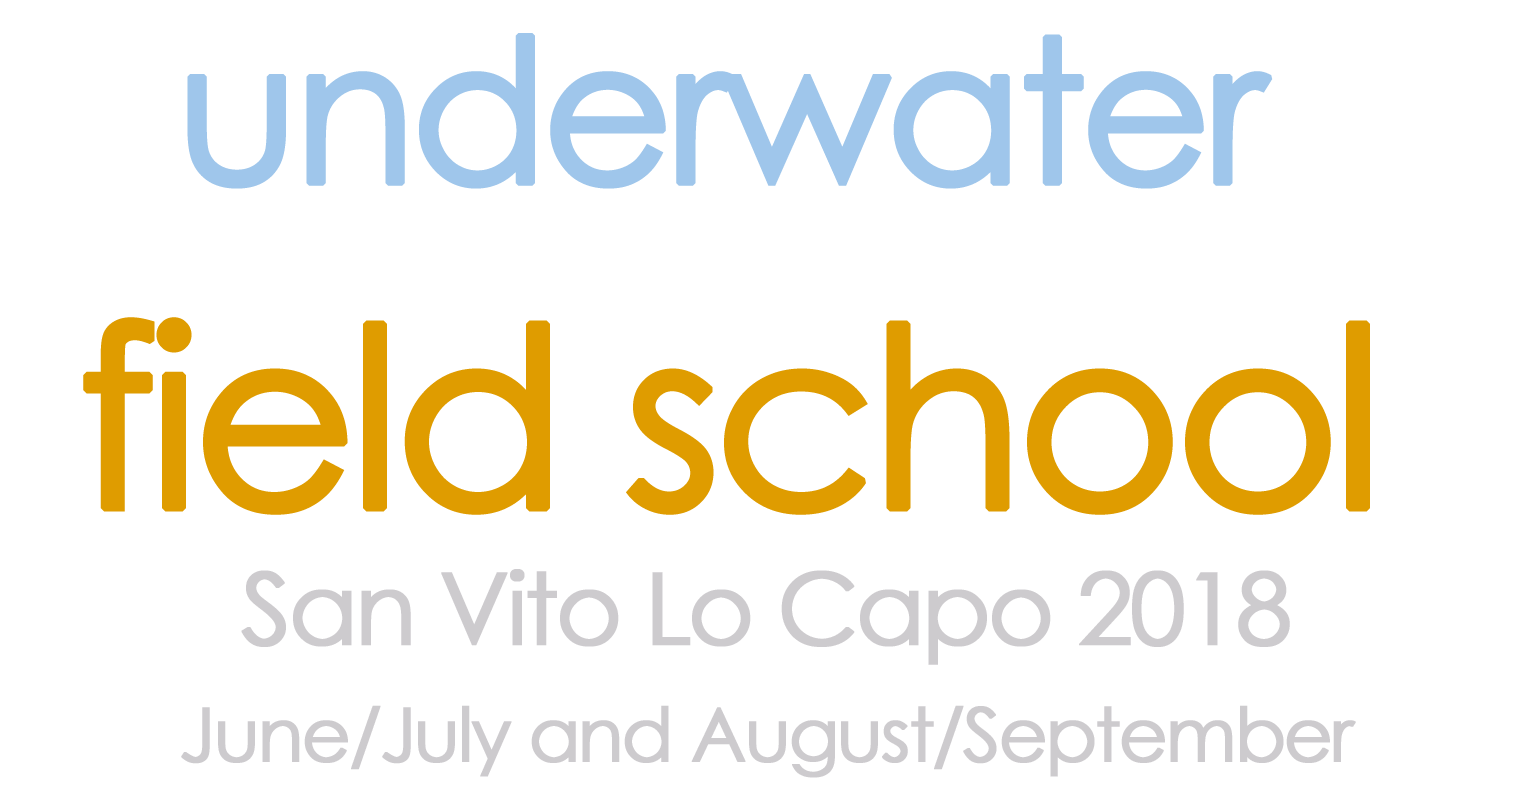 Underwater archaeology field school 2018